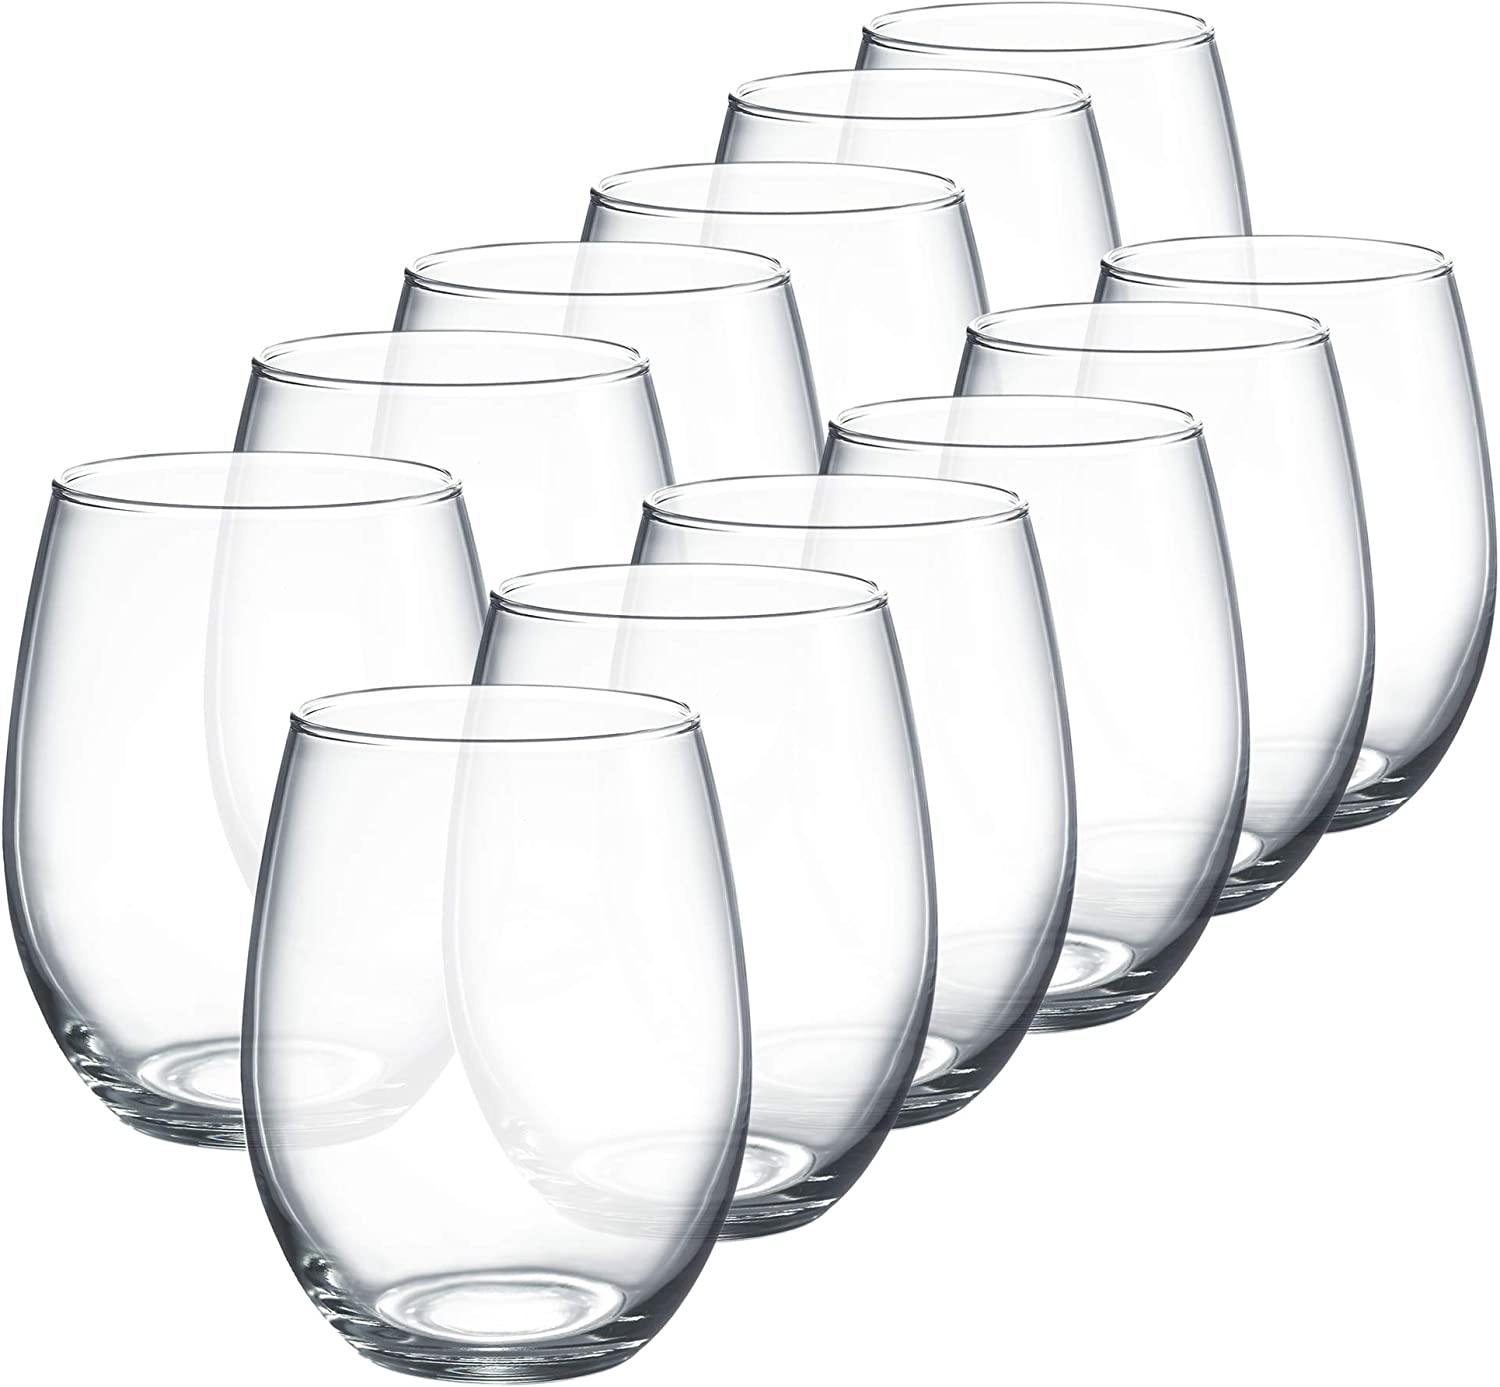 Luminarc Perfection Stemless Wine Glass Set Of 12 15 Oz Clear N0056 Mixed Drinkware Sets Amazon Com